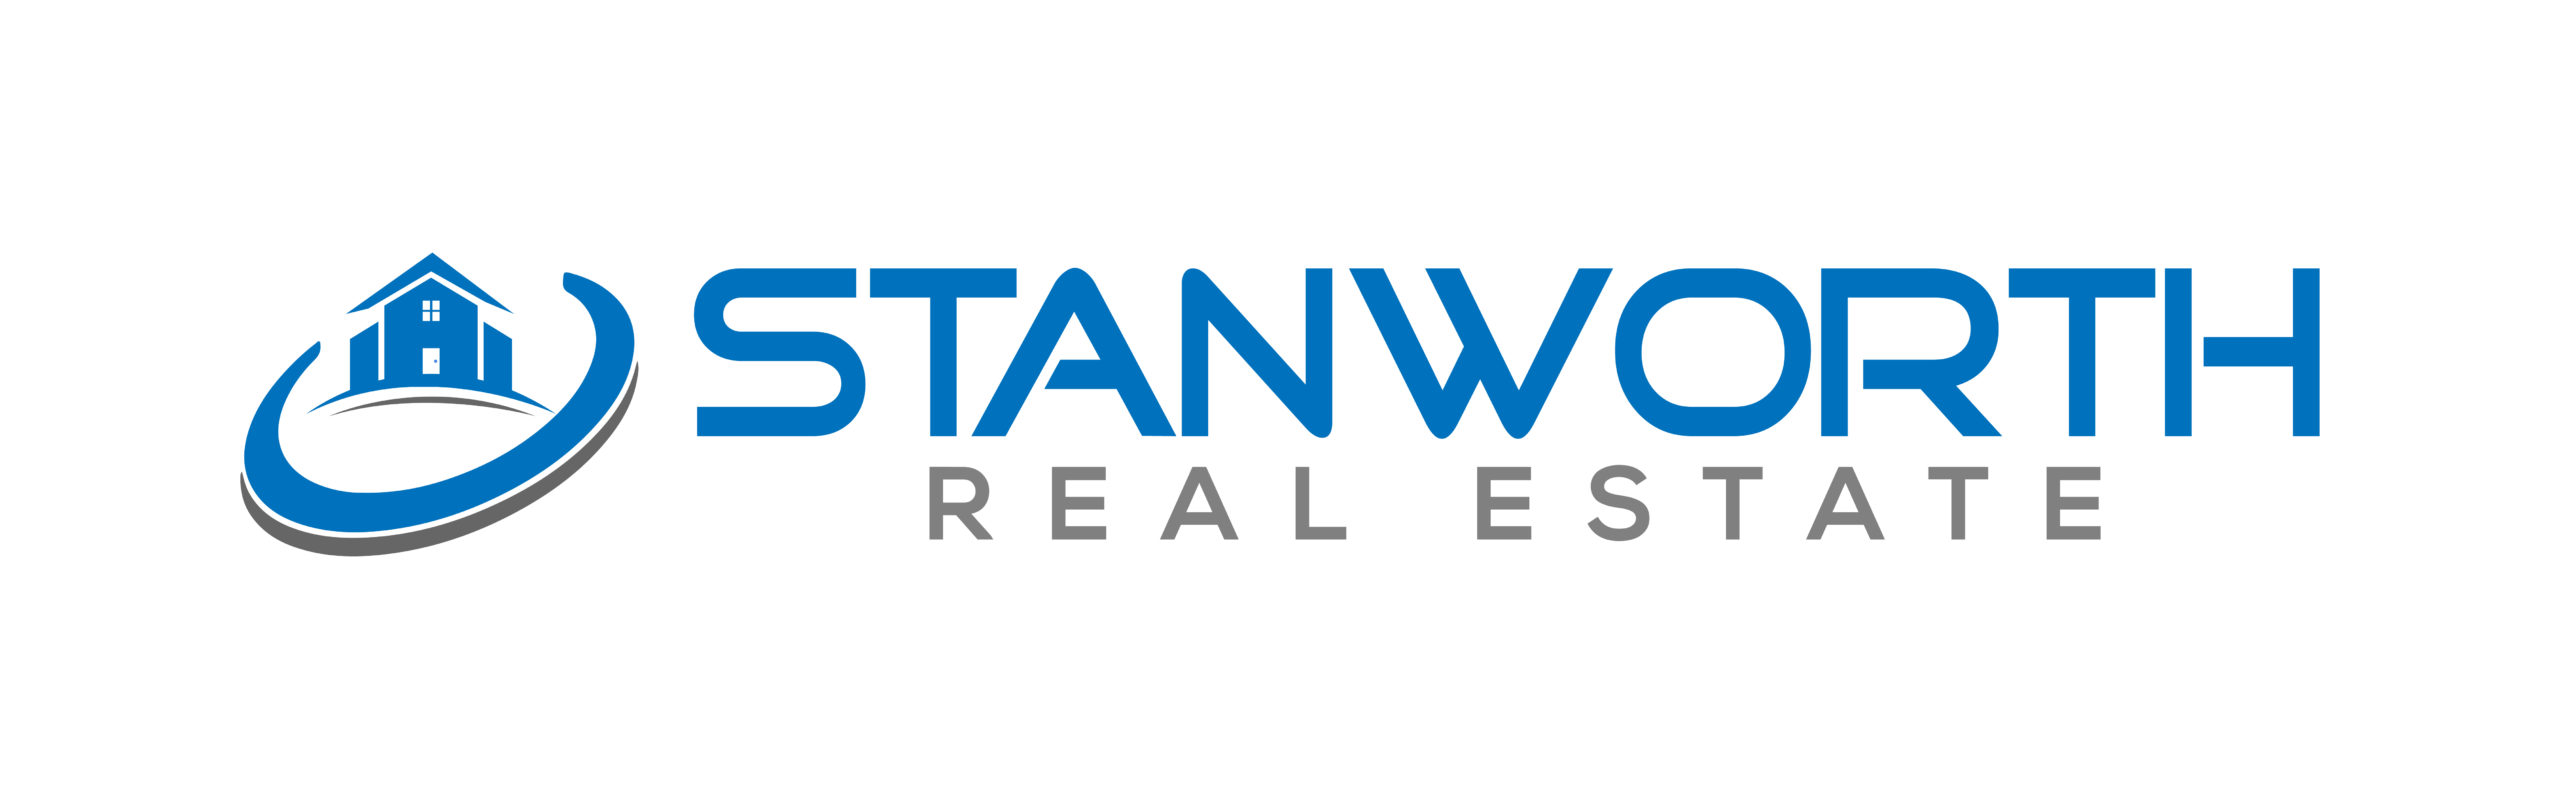 Stanworth Real Estate Logo